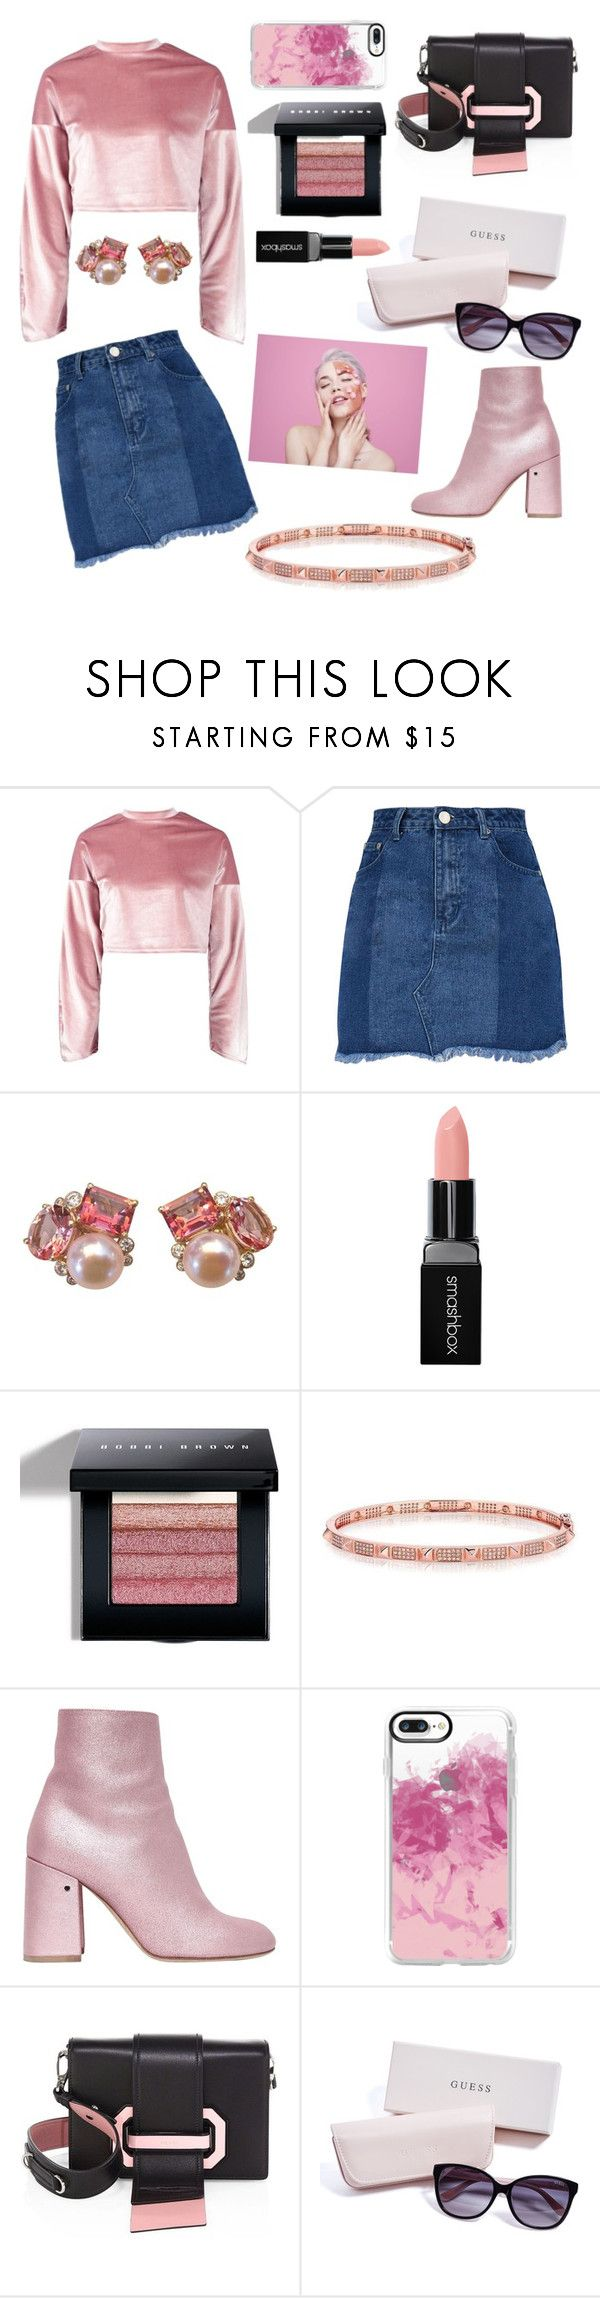 """Untitled #344"" by inesgenebra on Polyvore featuring Boohoo, Smashbox, Bobbi Brown Cosmetics, Laurence Dacade, Casetify, Prada and GUESS"